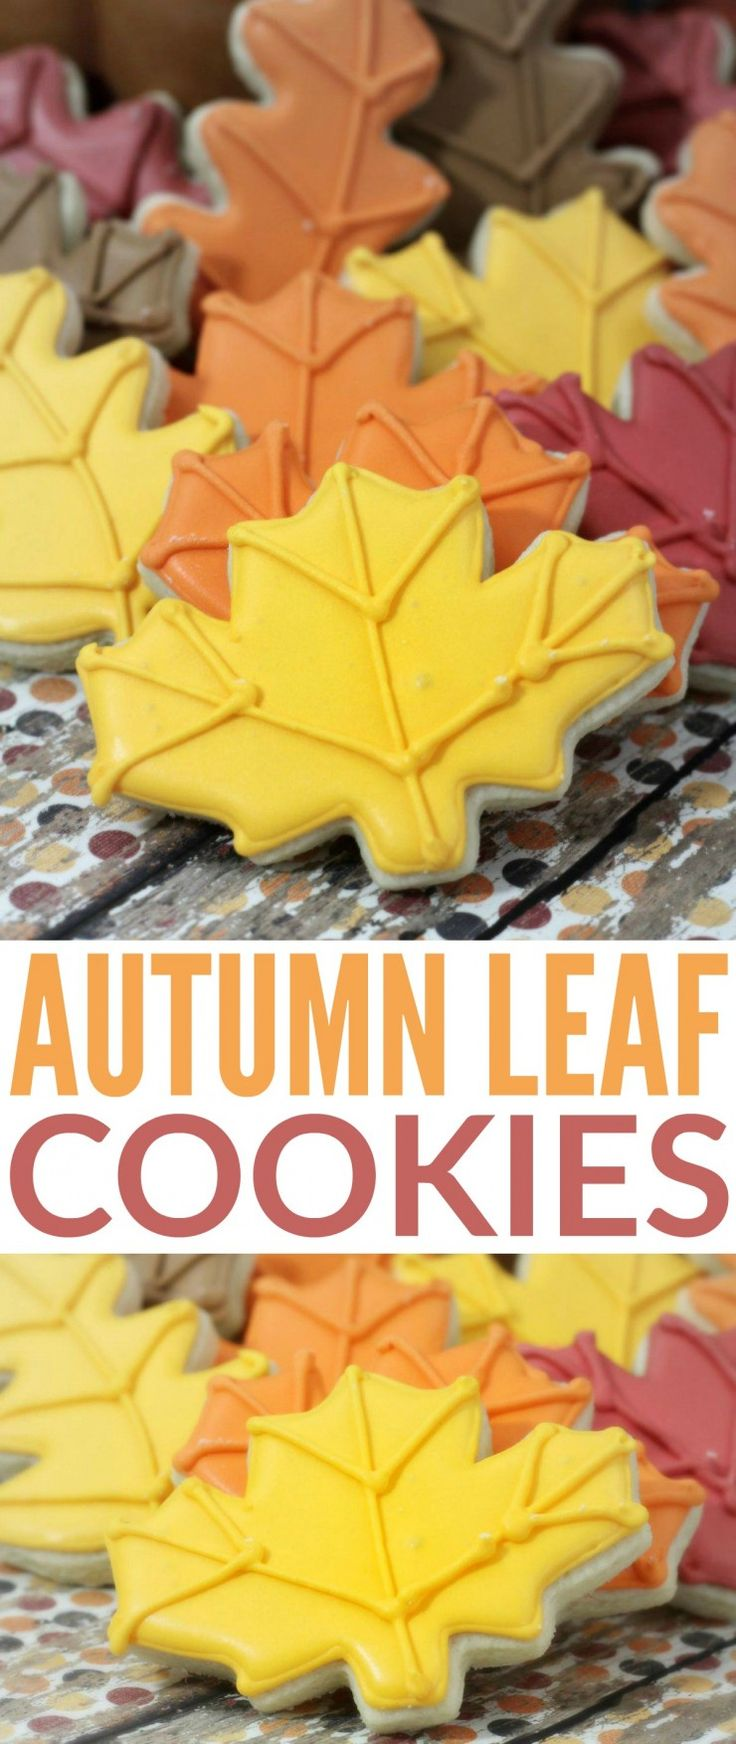 These autumn leaf cookies are almost too pretty to eat. Thankfully this sugar…